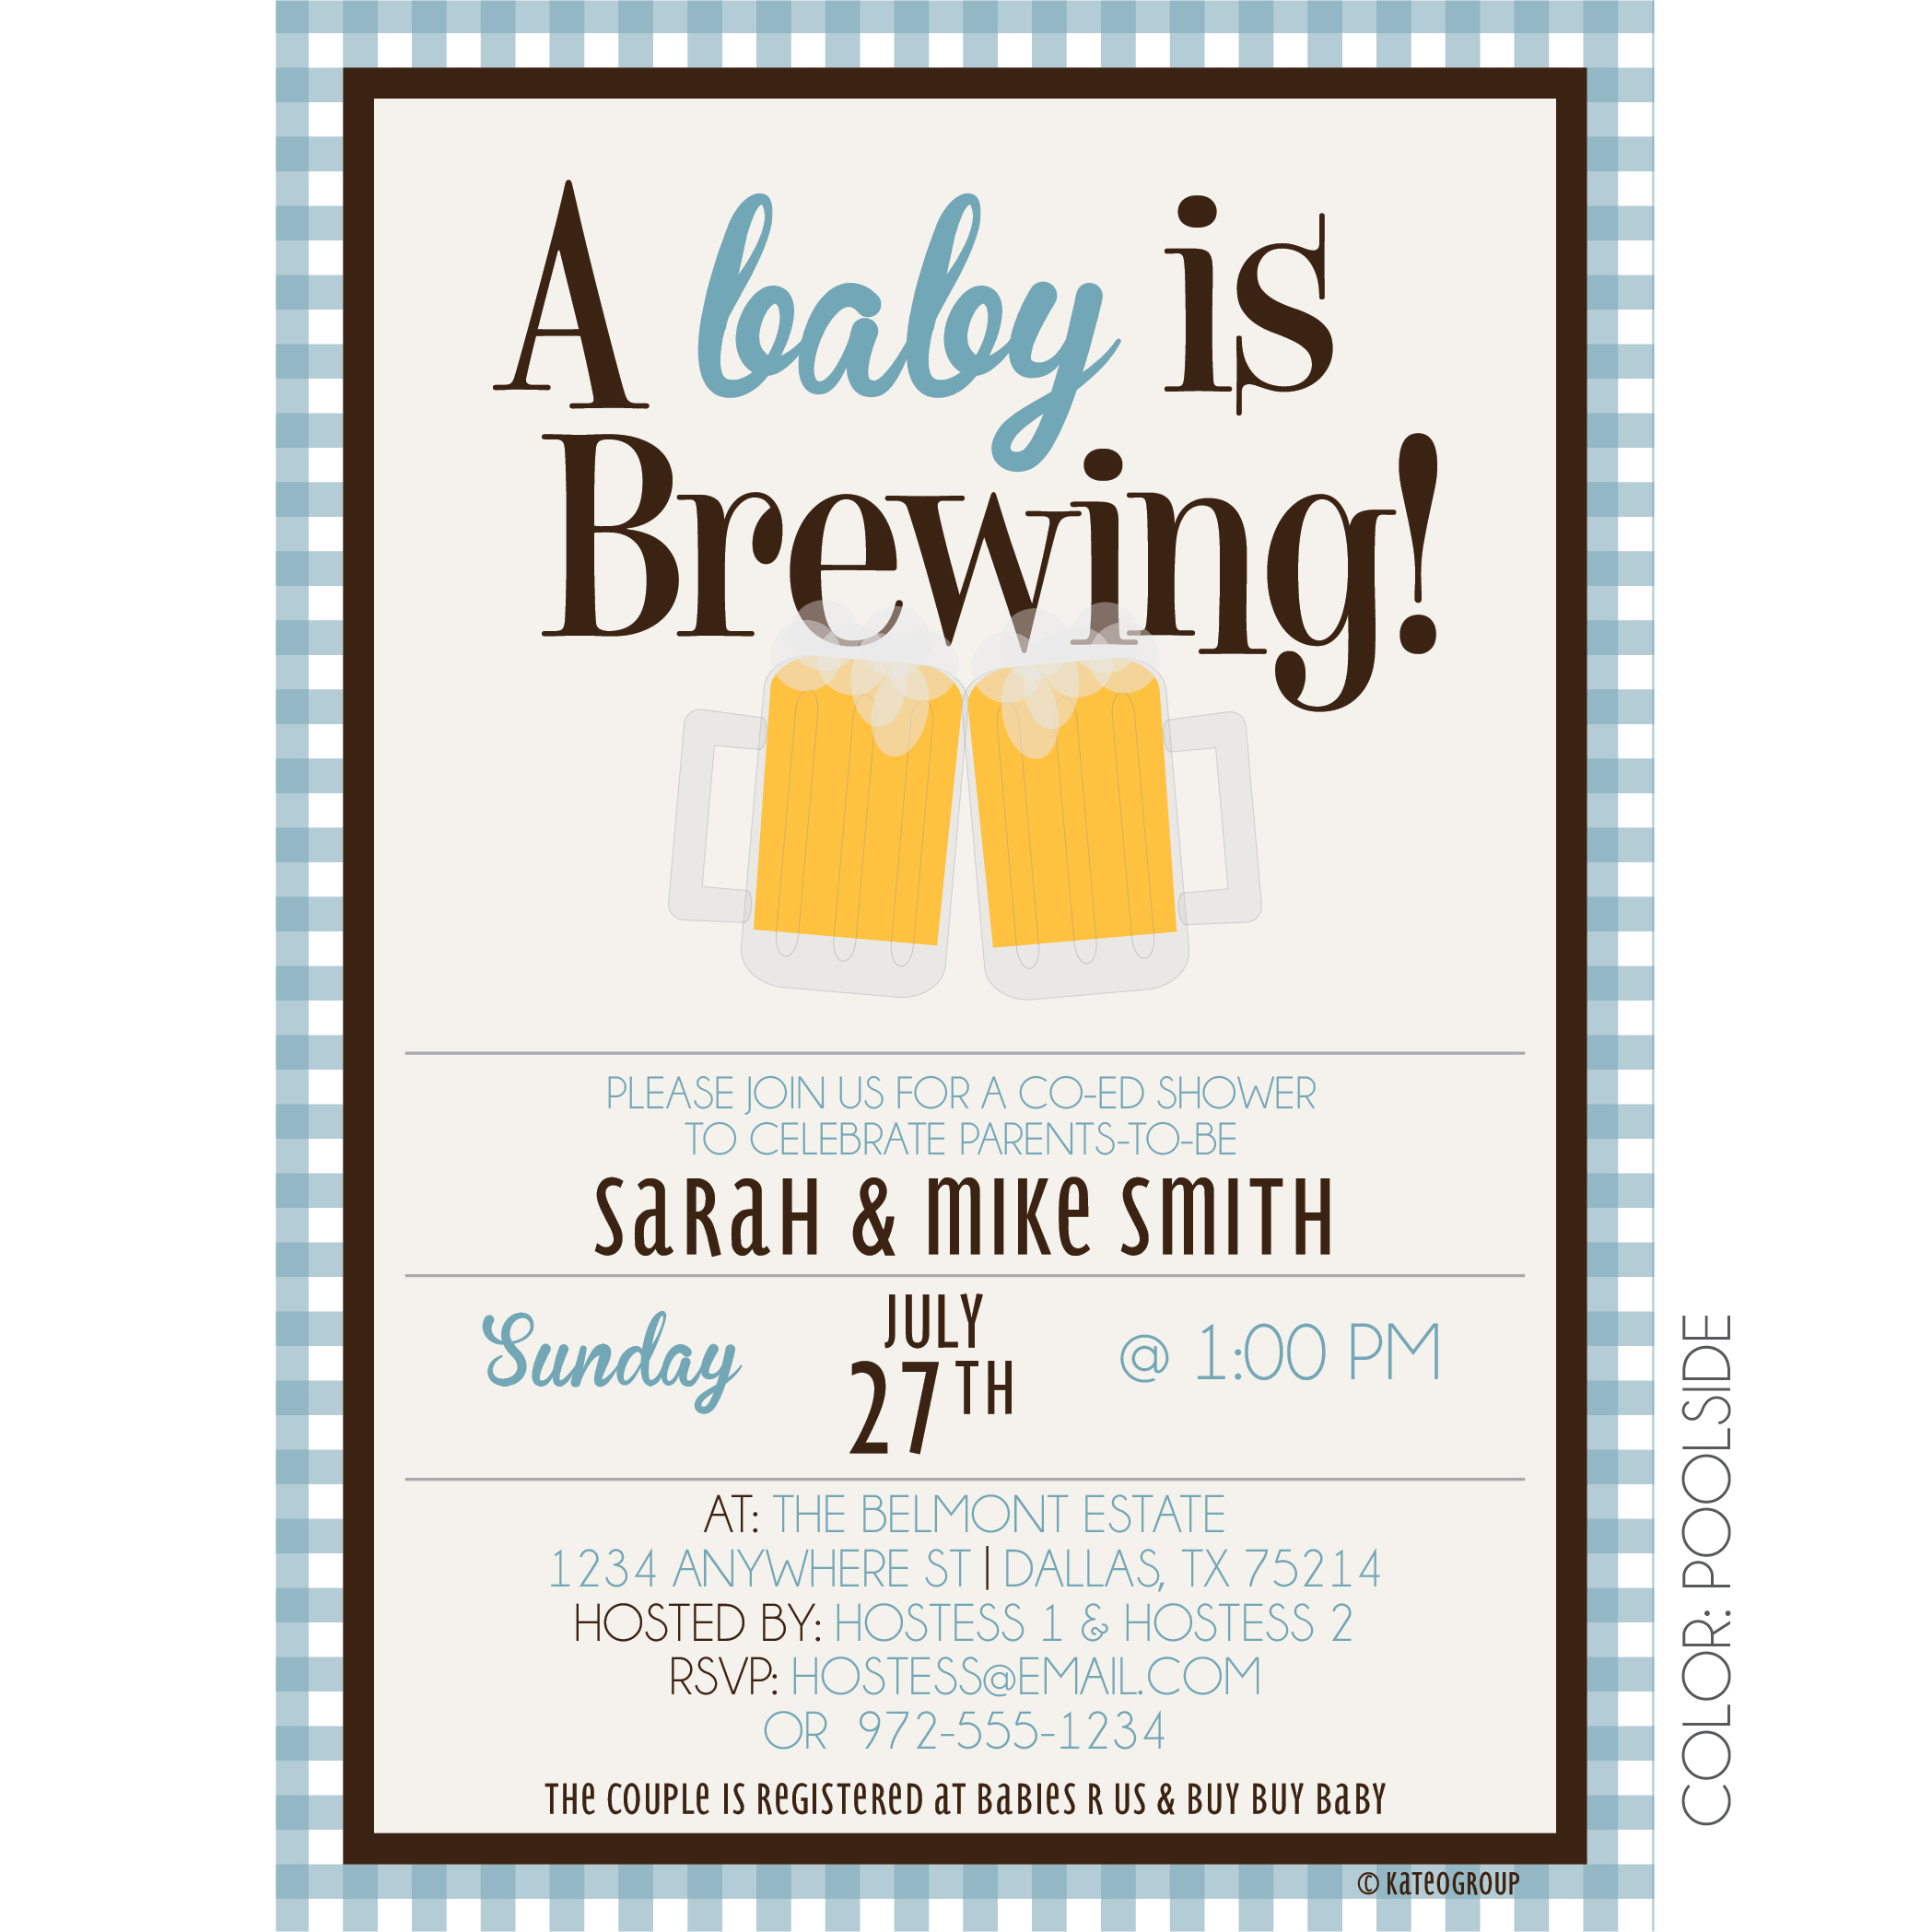 Baby Is Brewing Shower Invitations KateOGroup